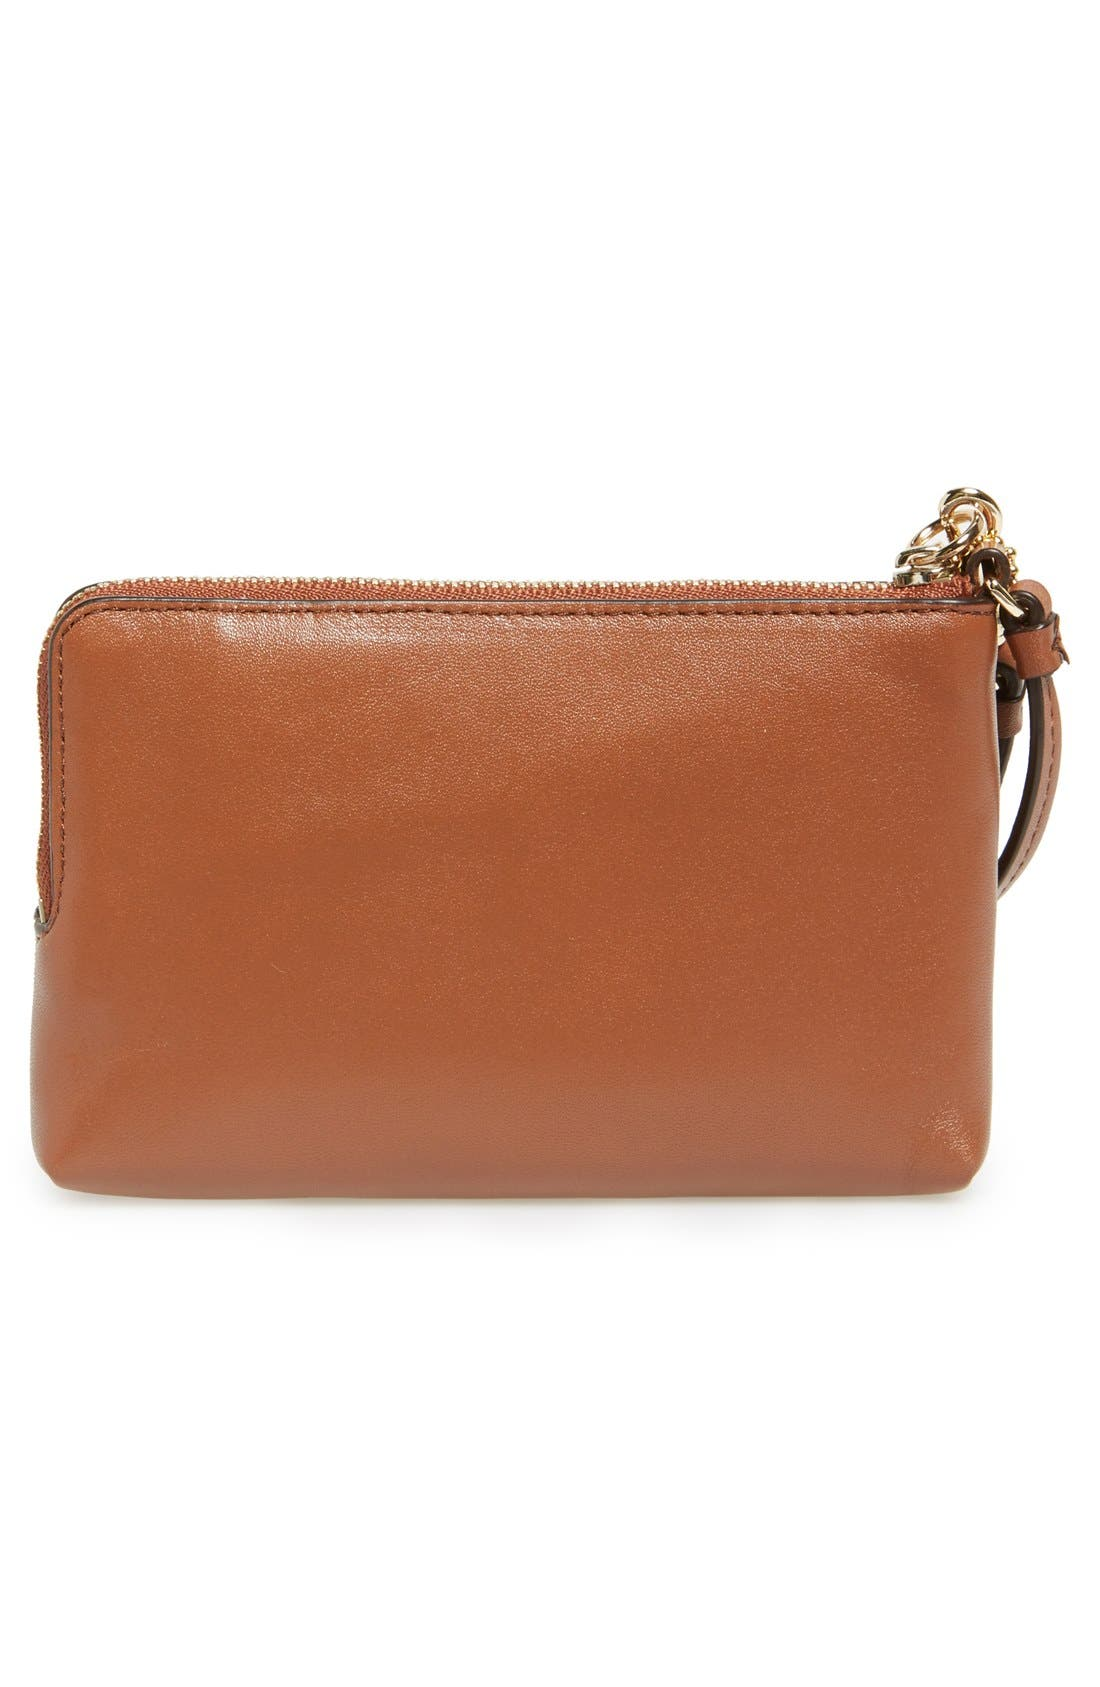 Alternate Image 3  - COACH Leather Wristlet